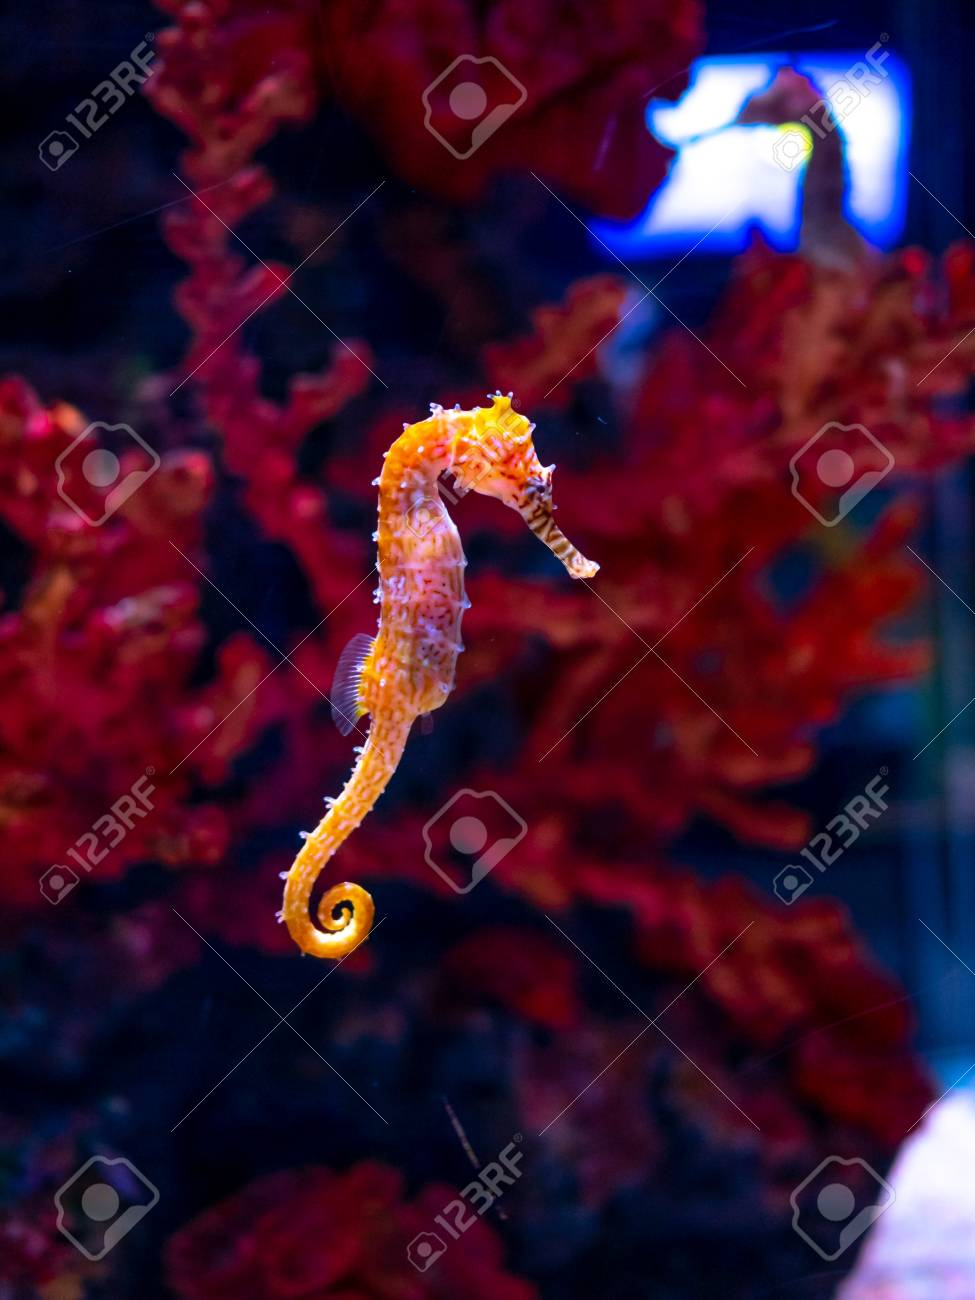 Sea horse in aquarium. These seahorses live in the warm seas around Indonesia, Philippines and Malaysia. They are usually yellow and have an unusual black and white striped nose. - 118817555